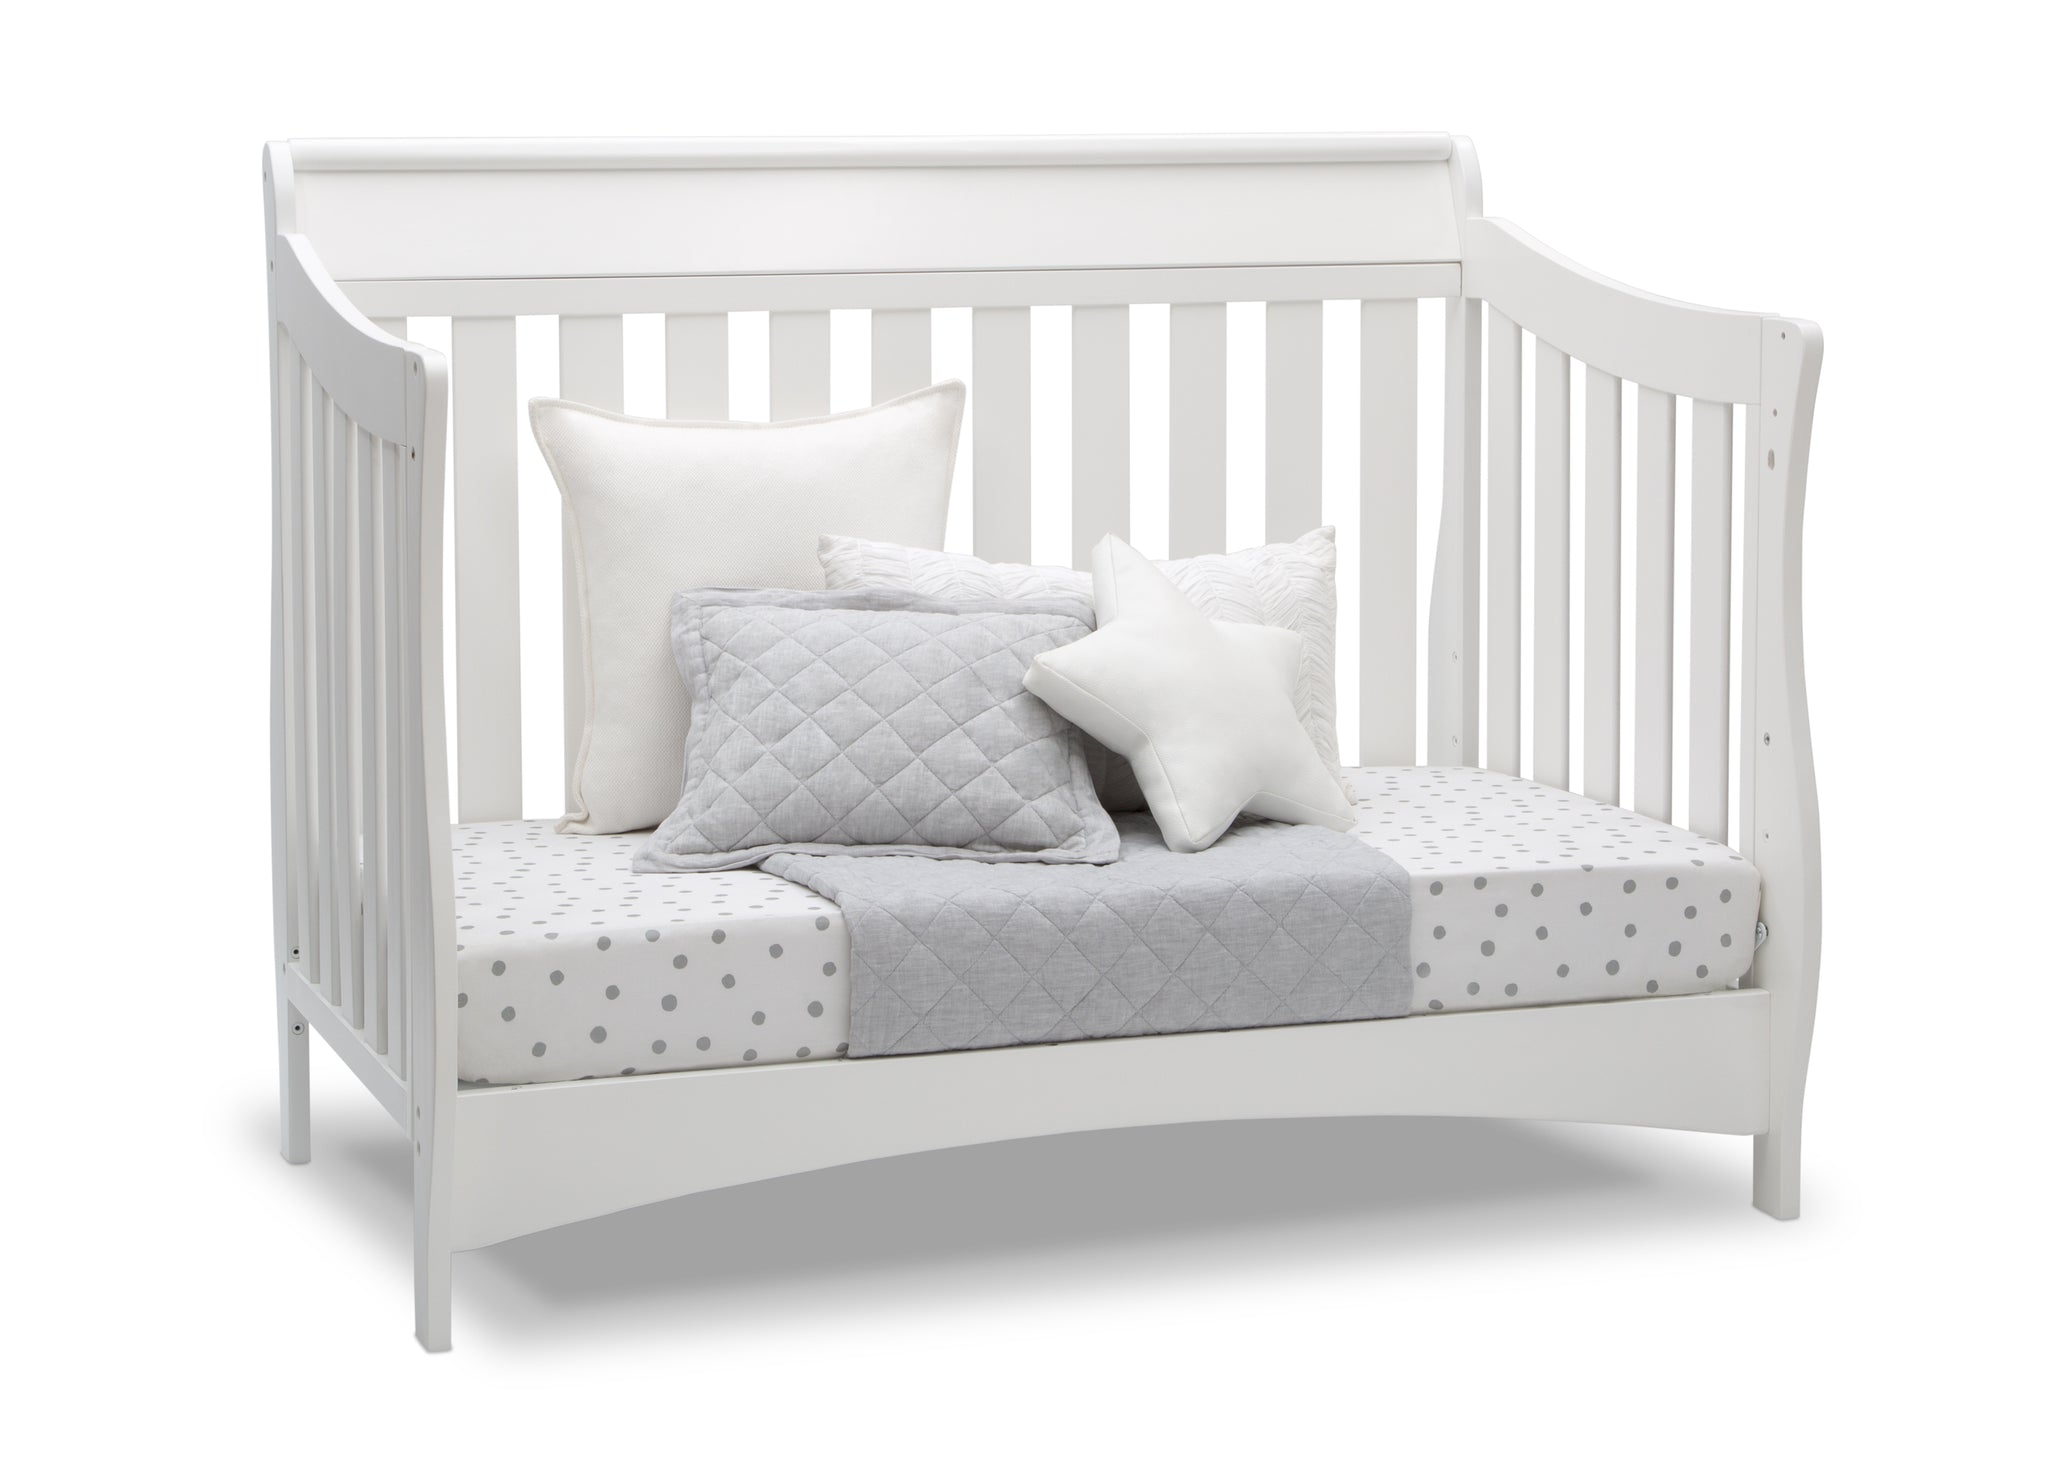 Delta Children Bianca White (130) Bentley S Series Deluxe 6-in-1 Convertible Crib, Right Day Bed Silo View